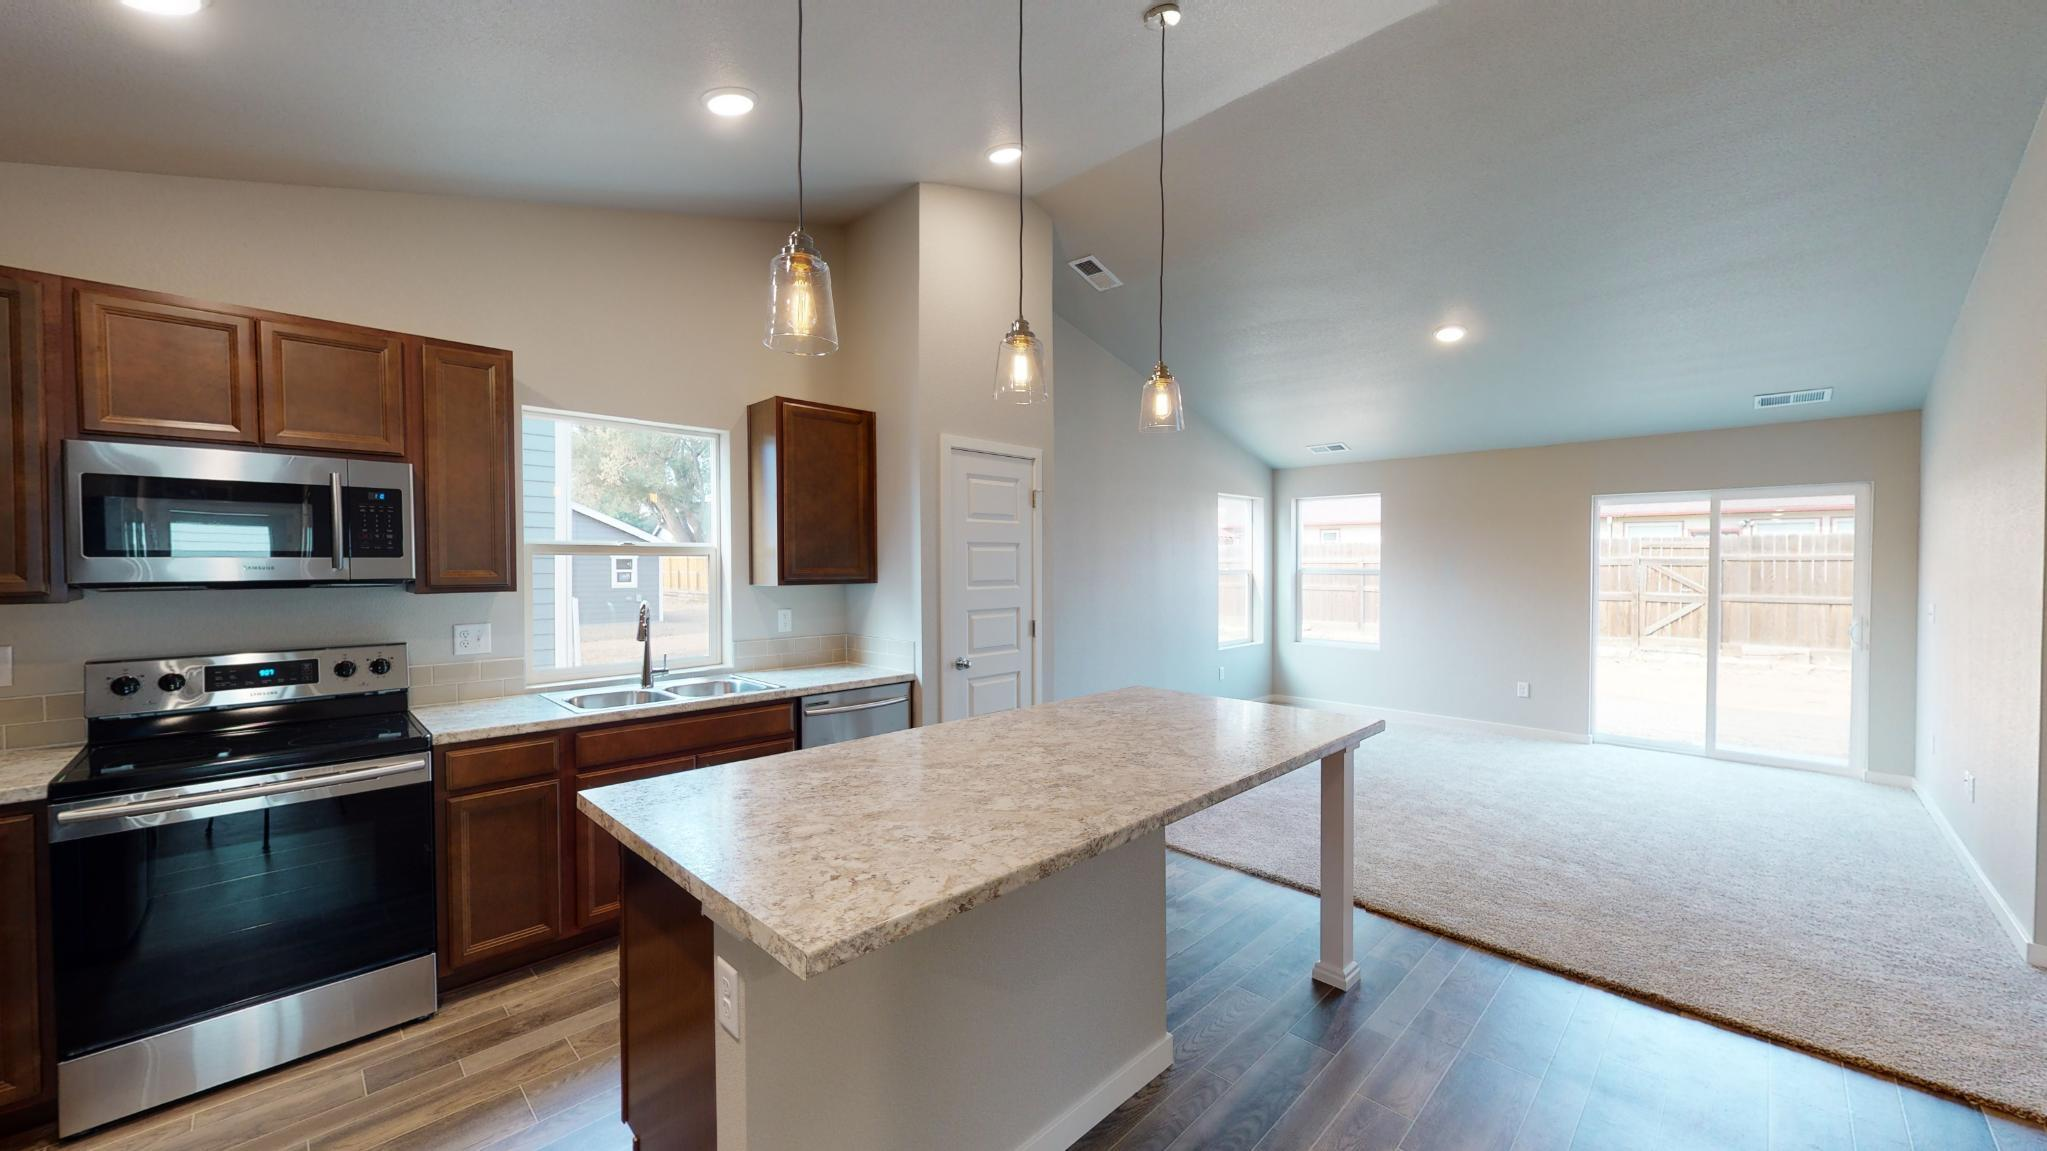 Kitchen featured in the Bristol By Baessler Homes in Greeley, CO